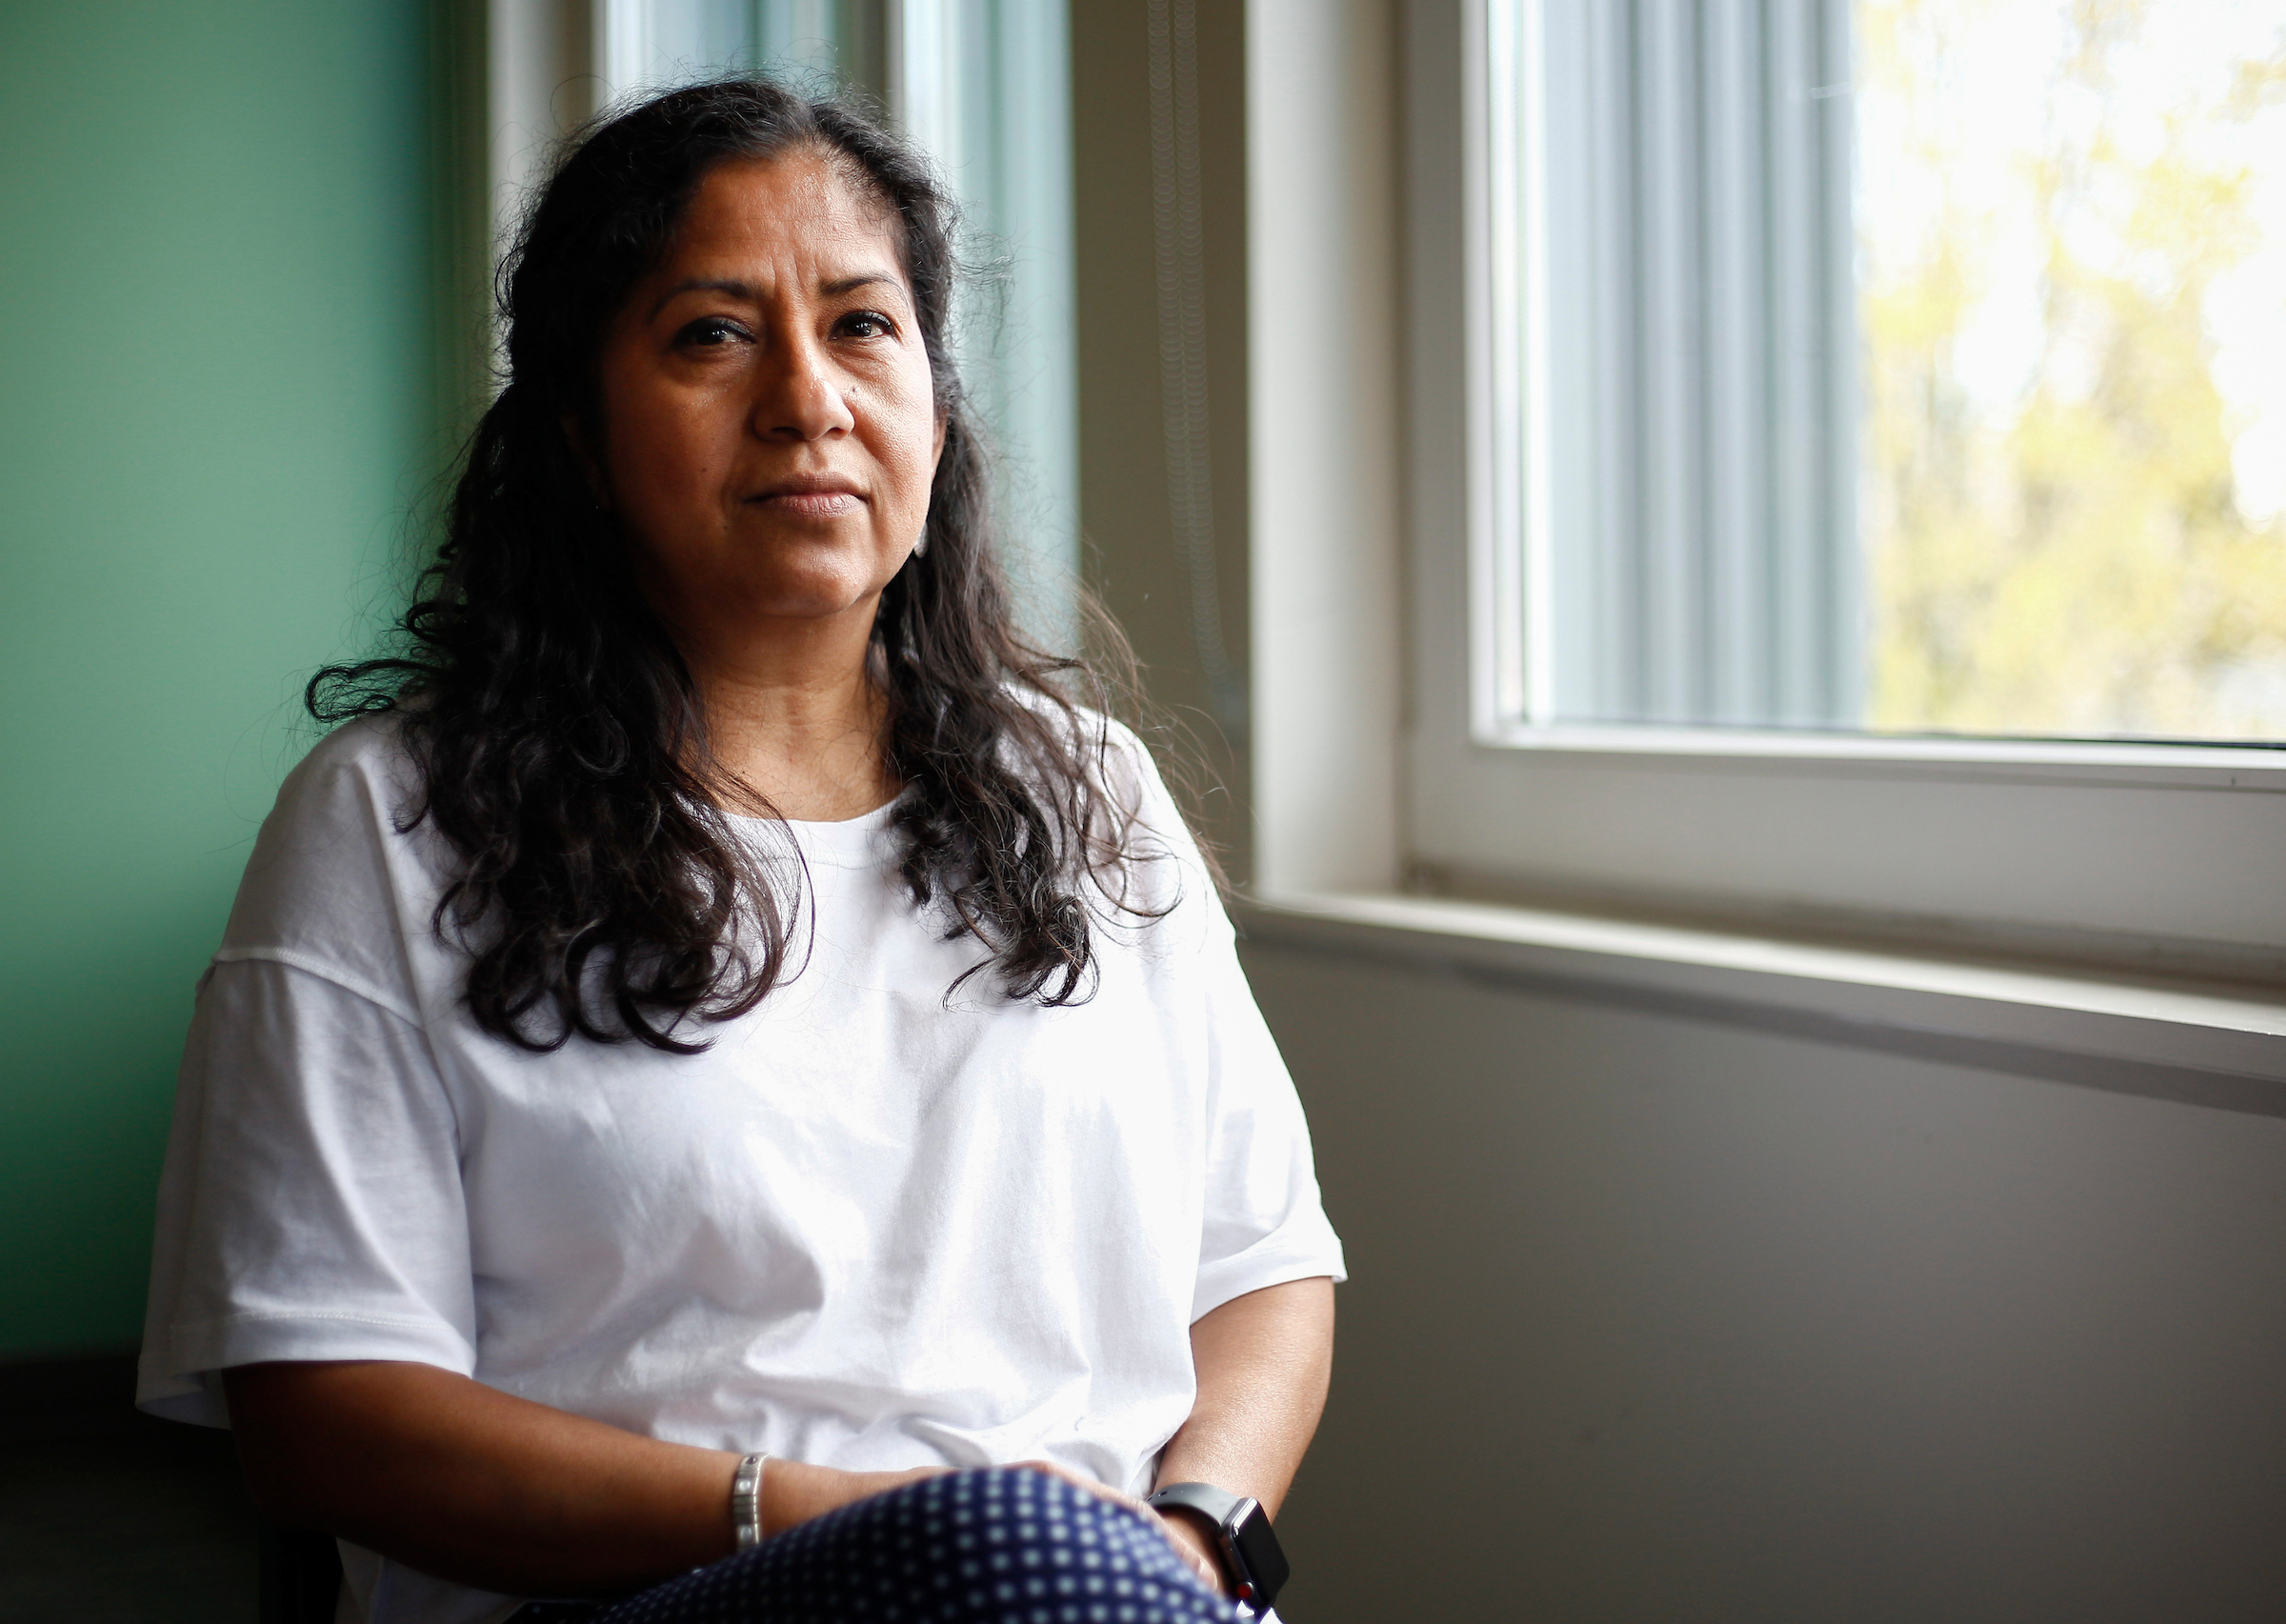 Community organizer and domestic worker Silvia Gonzalez poses for a portrait at Casa Latina in Seattle on Tuesday, April 10, 2018.